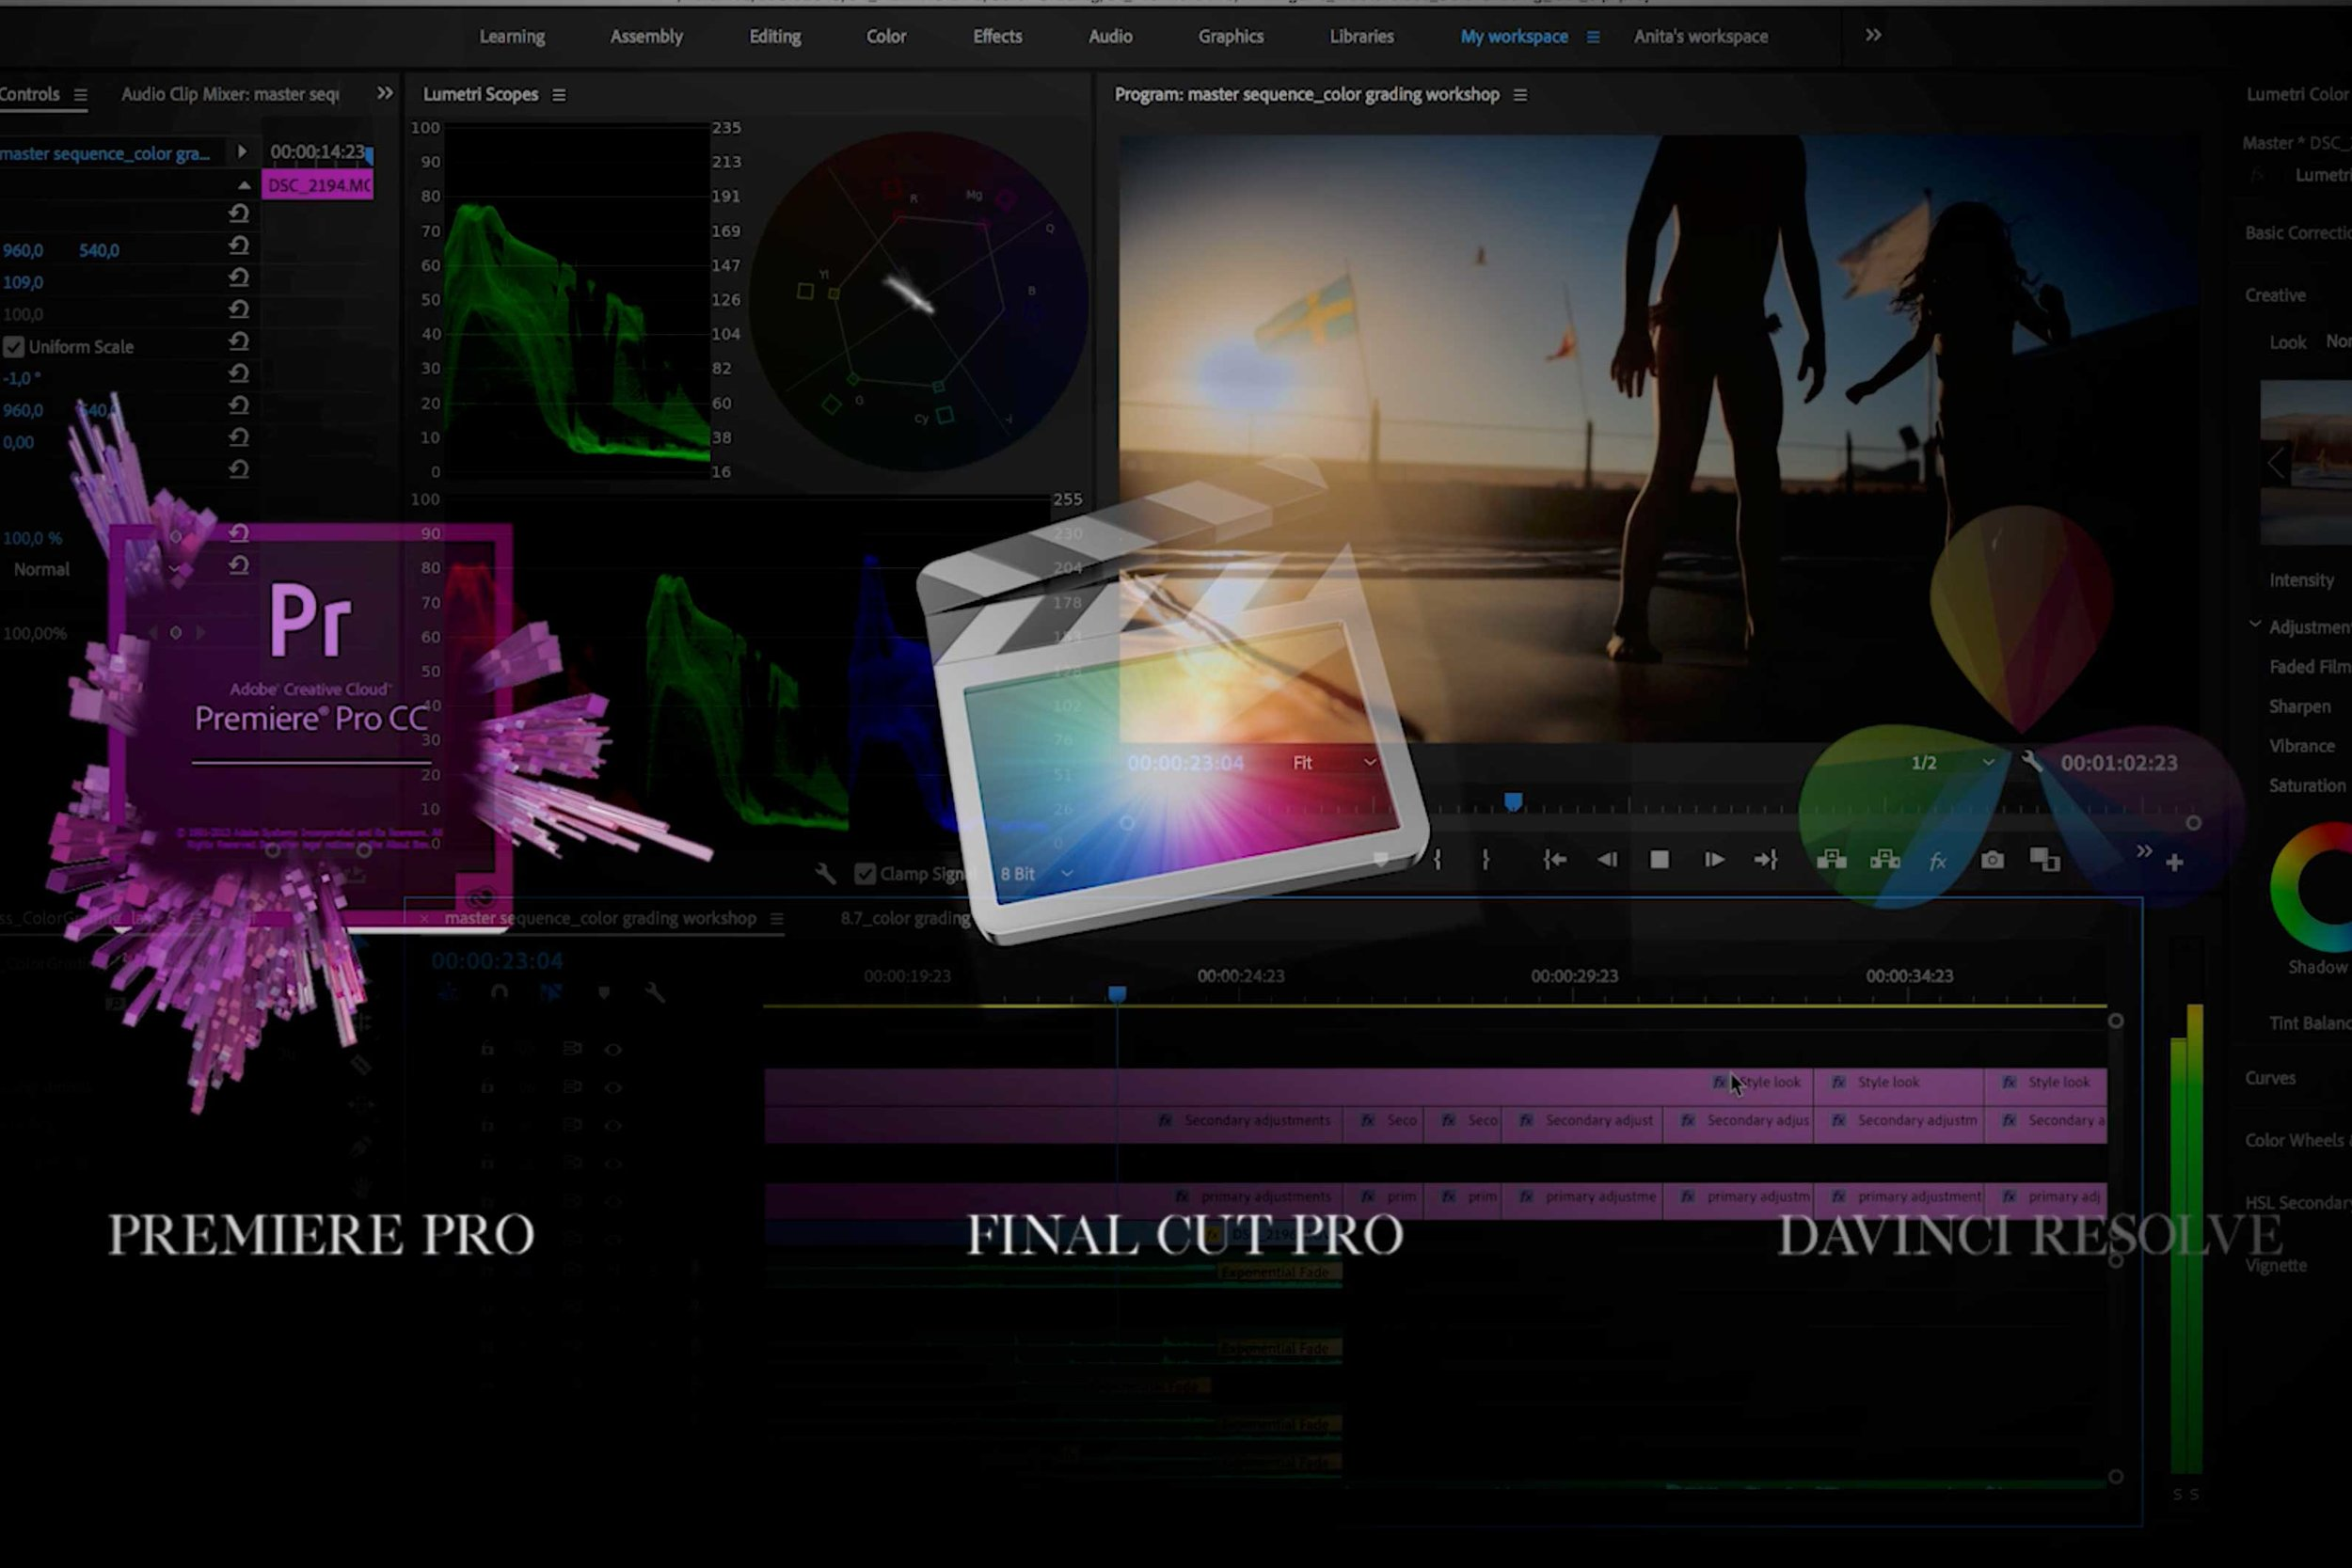 These tips can be applied across a number of popular video editing software, from Premiere Pro to Final Cut Pro & DaVinci Resolve.